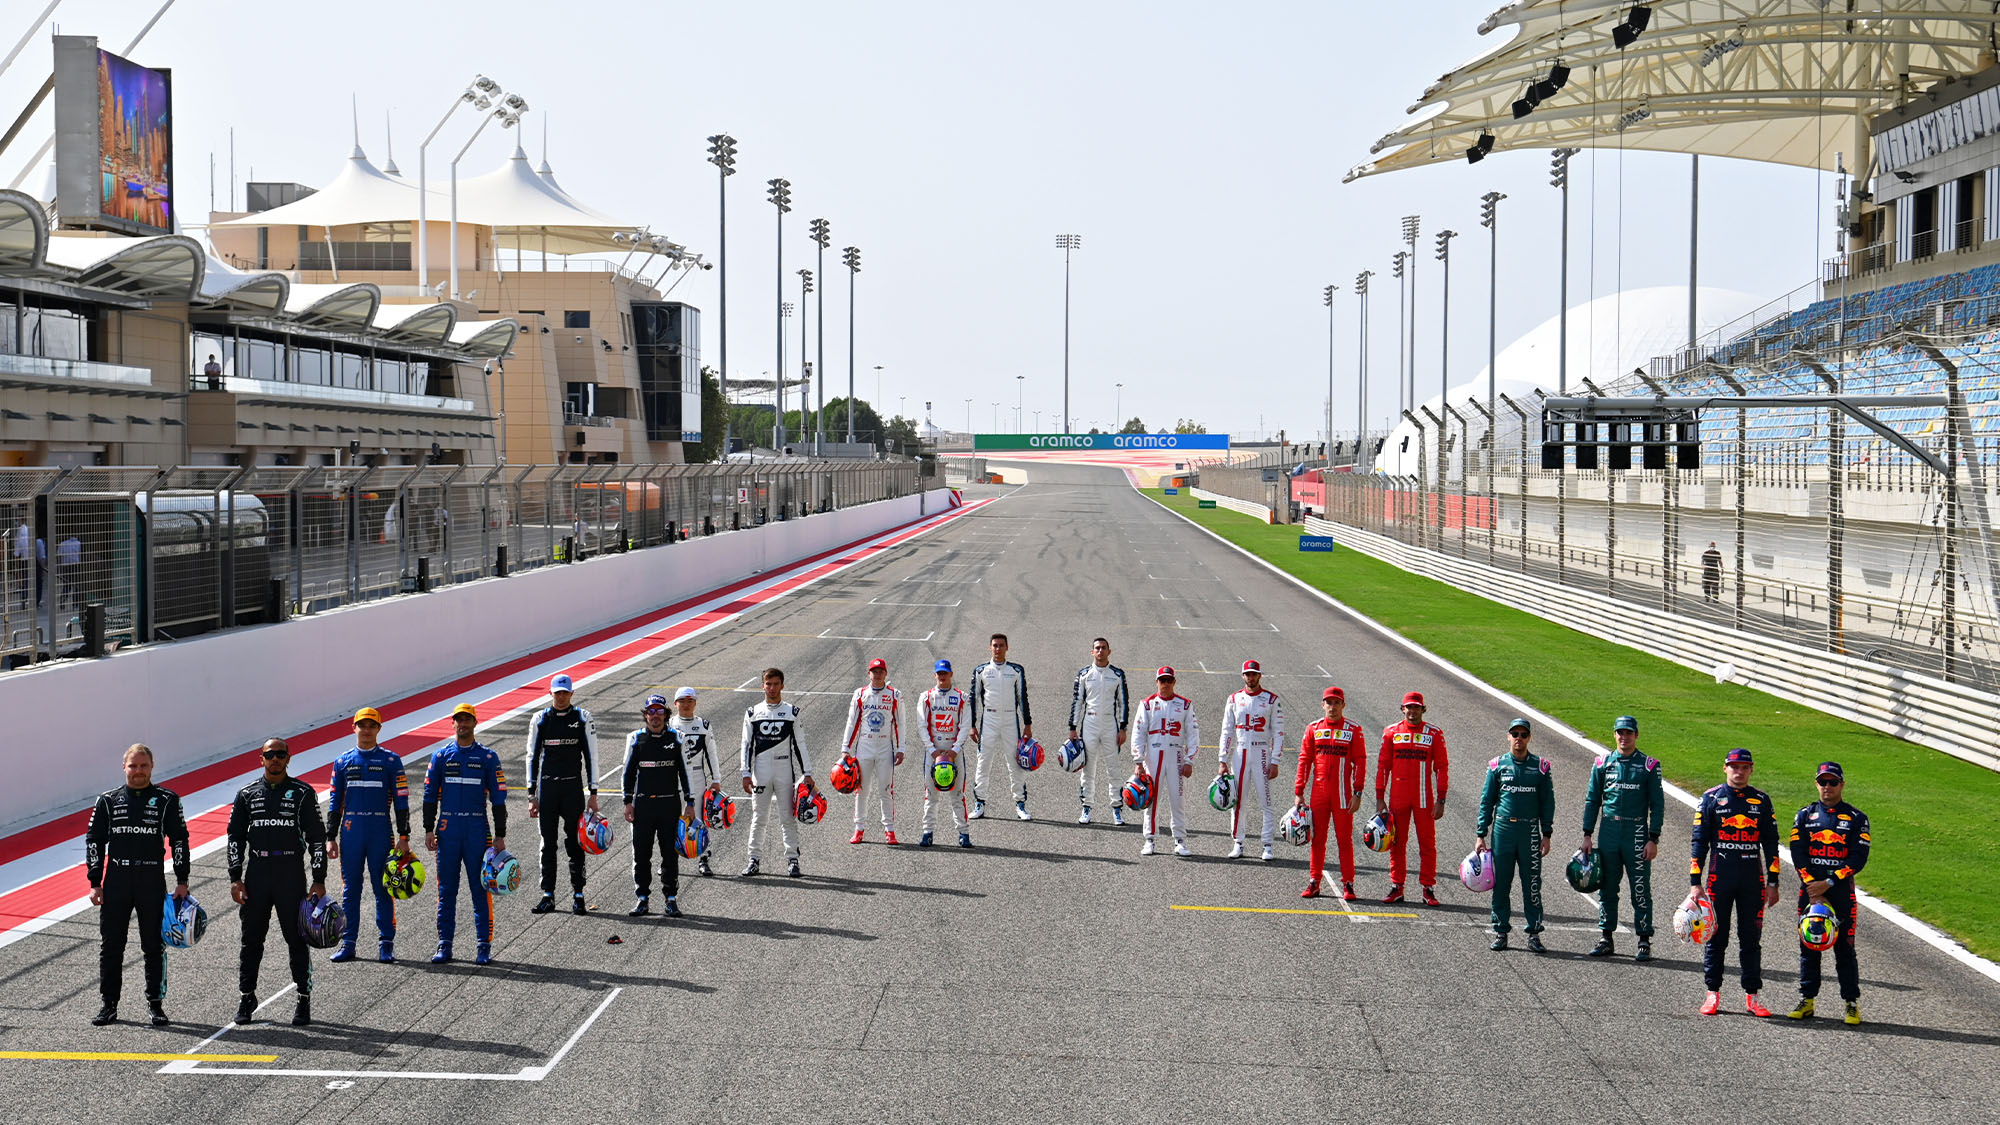 BAHRAIN, BAHRAIN - MARCH 12: The F1 drivers stand on the grid during Day One of F1 Testing at Bahrain International Circuit on March 12, 2021 in Bahrain, Bahrain. (Photo by Clive Mason - Formula 1/Formula 1 via Getty Images)